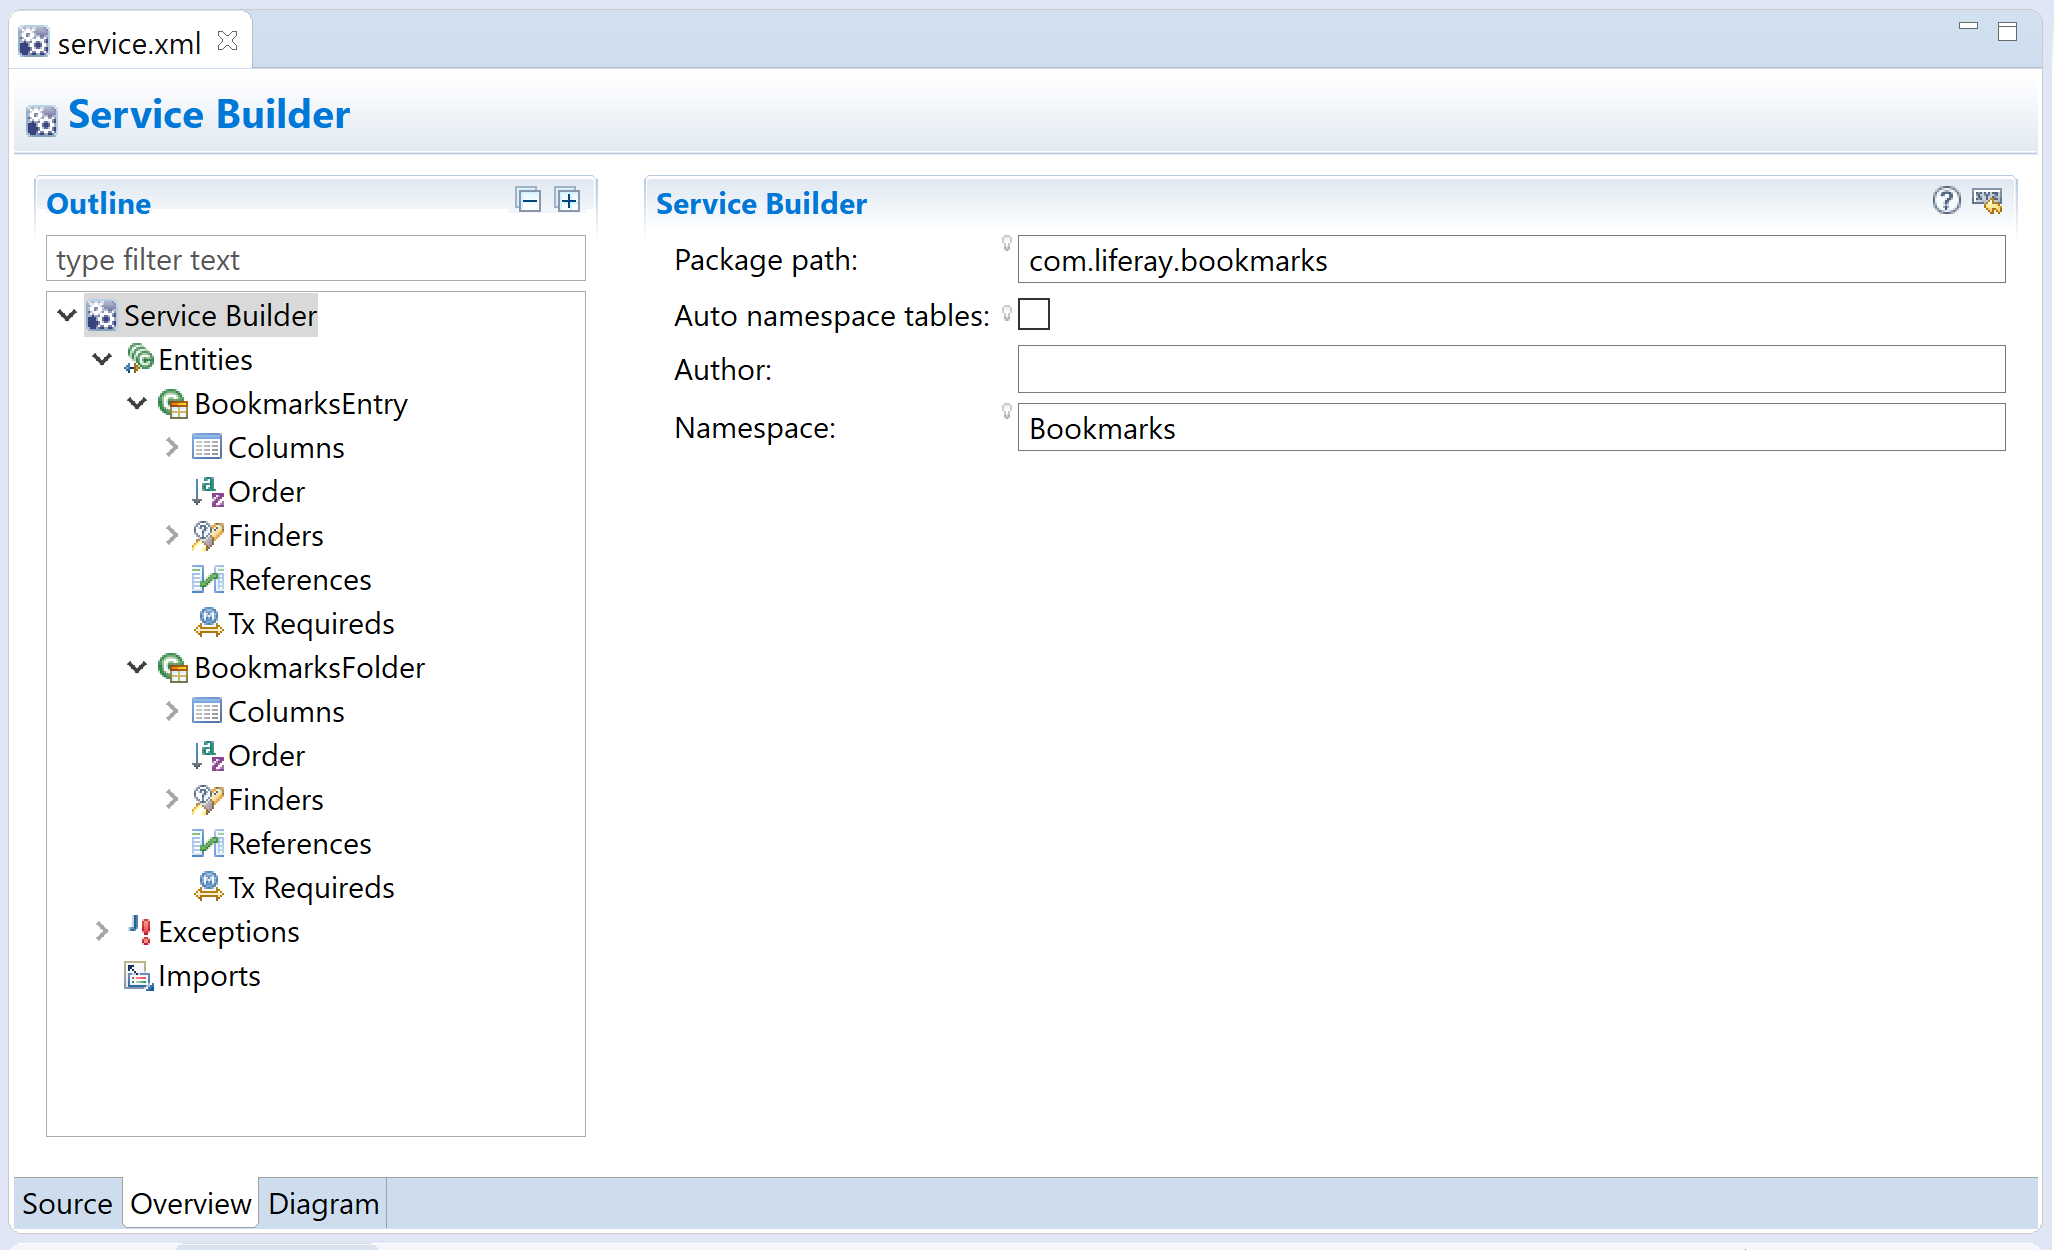 Figure 1: This is the Service Builder form from the Bookmarks applications service.xml.